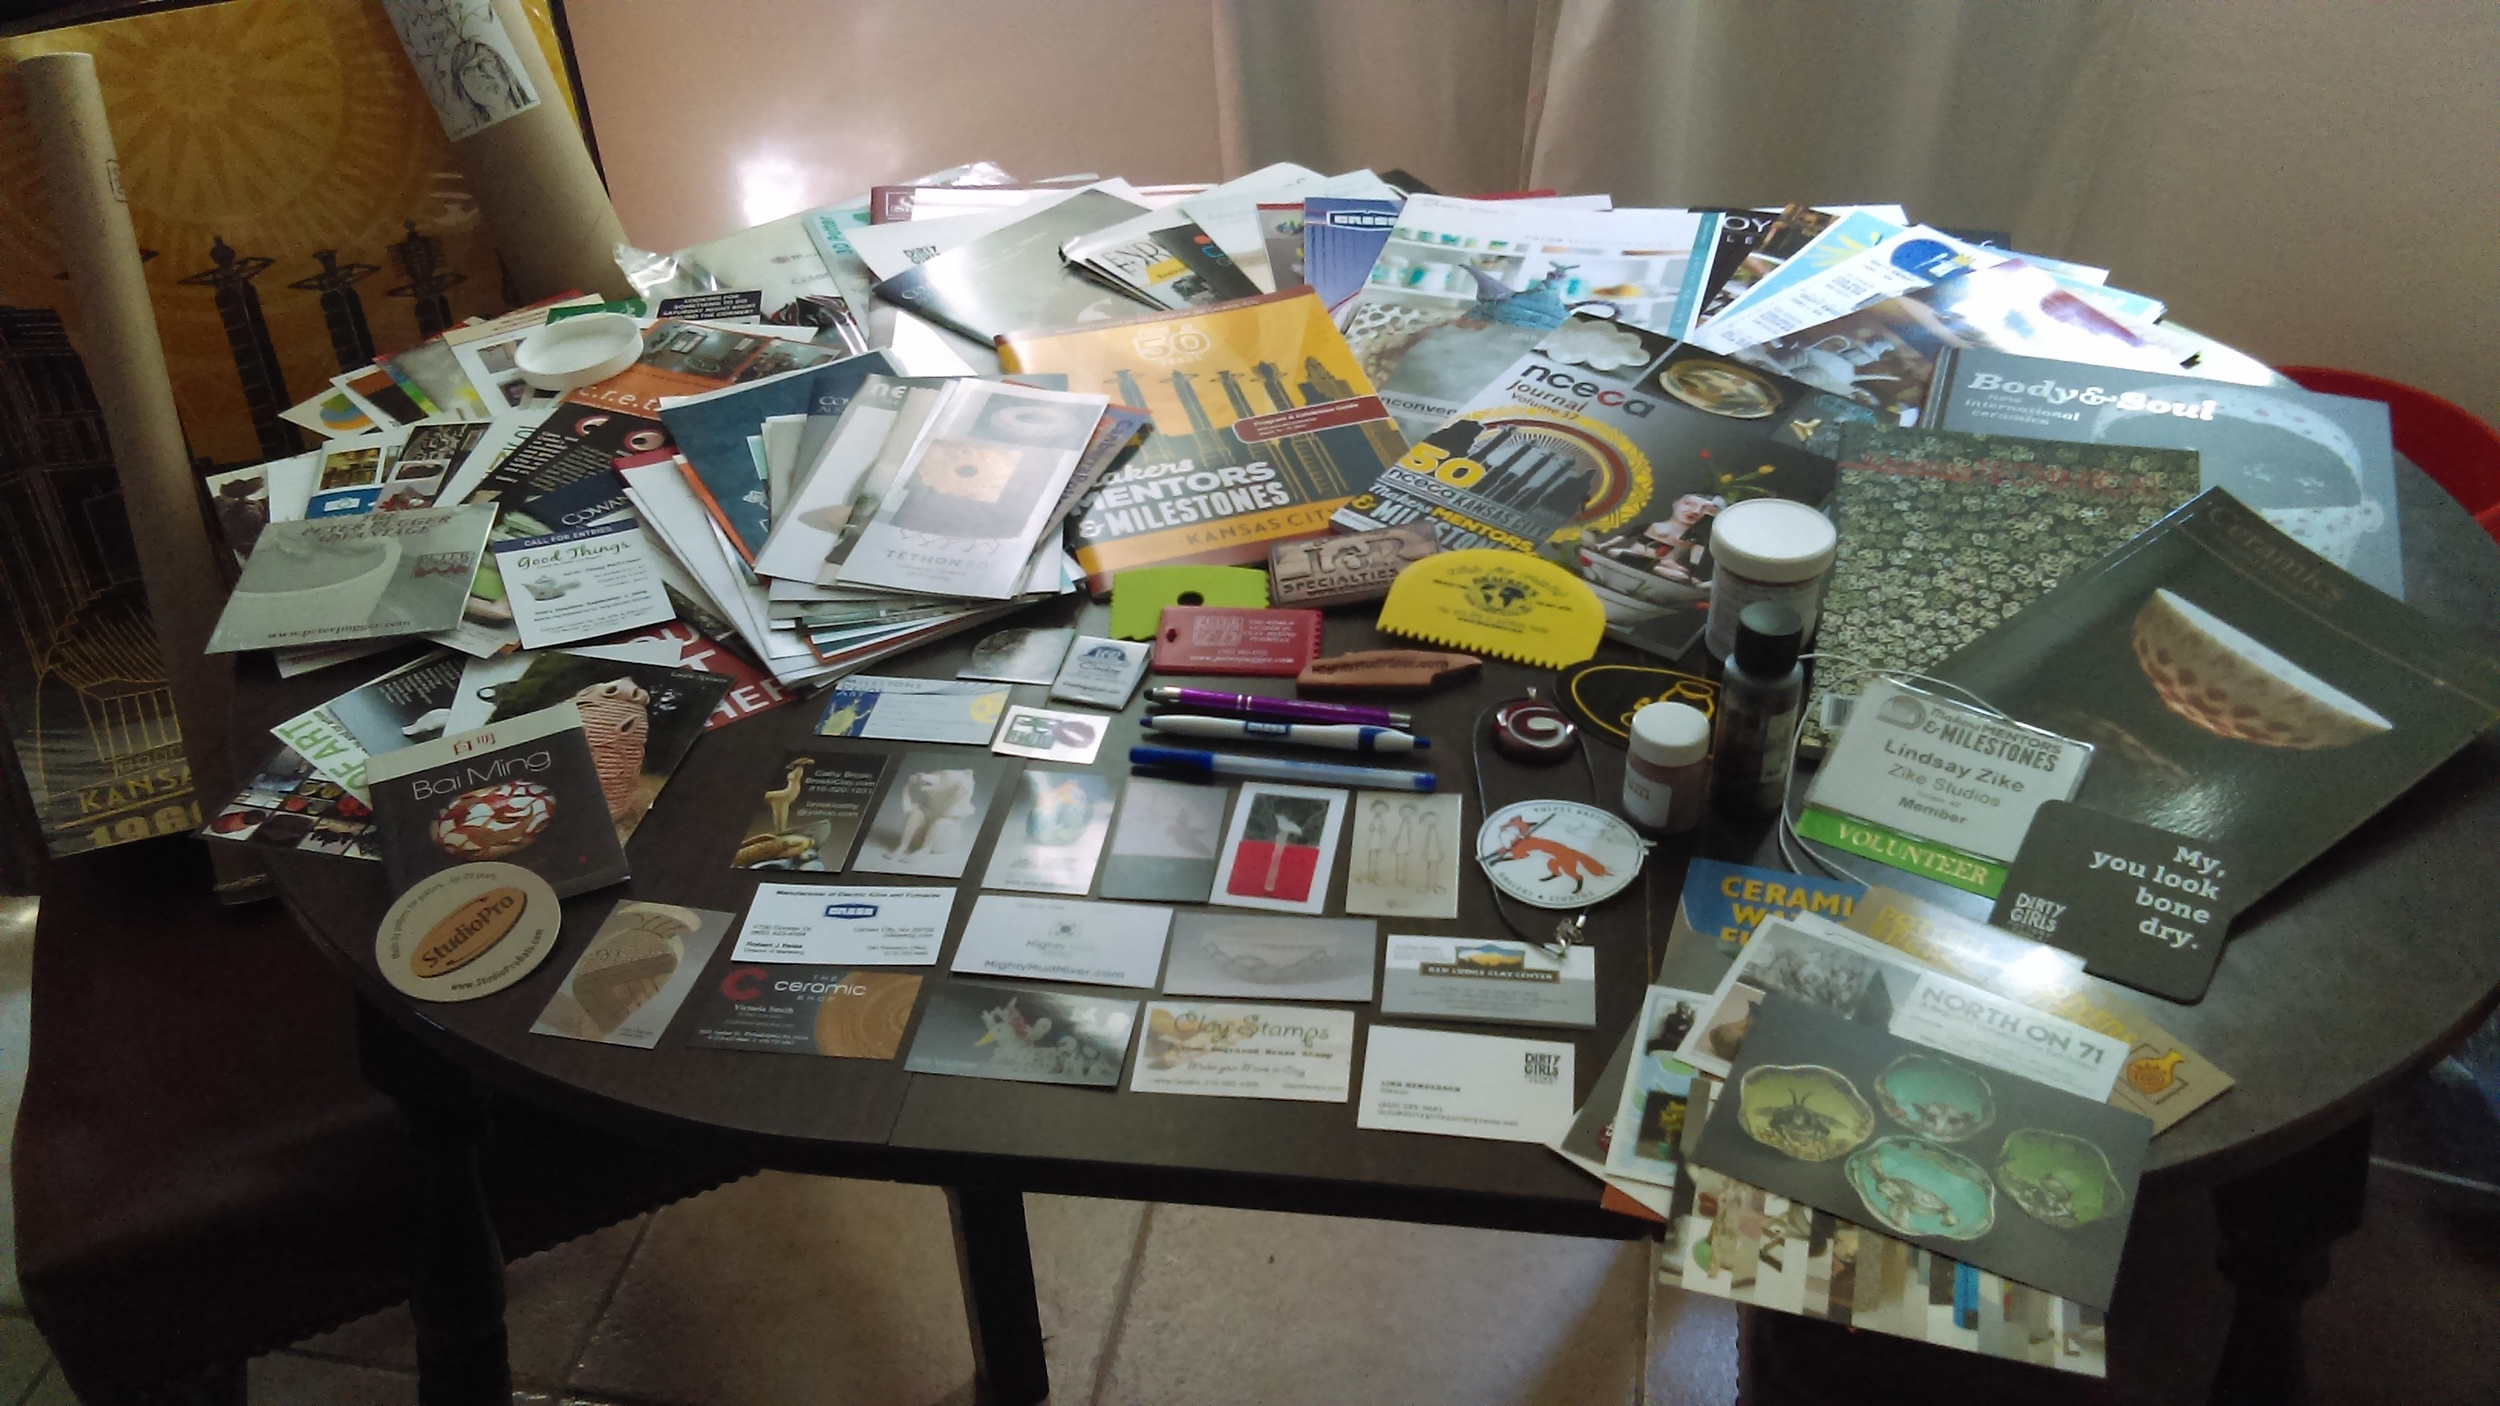 Swag from the Resources Floor. Mostly fliers and brochures, but also some samples, posters, pens and ribs.